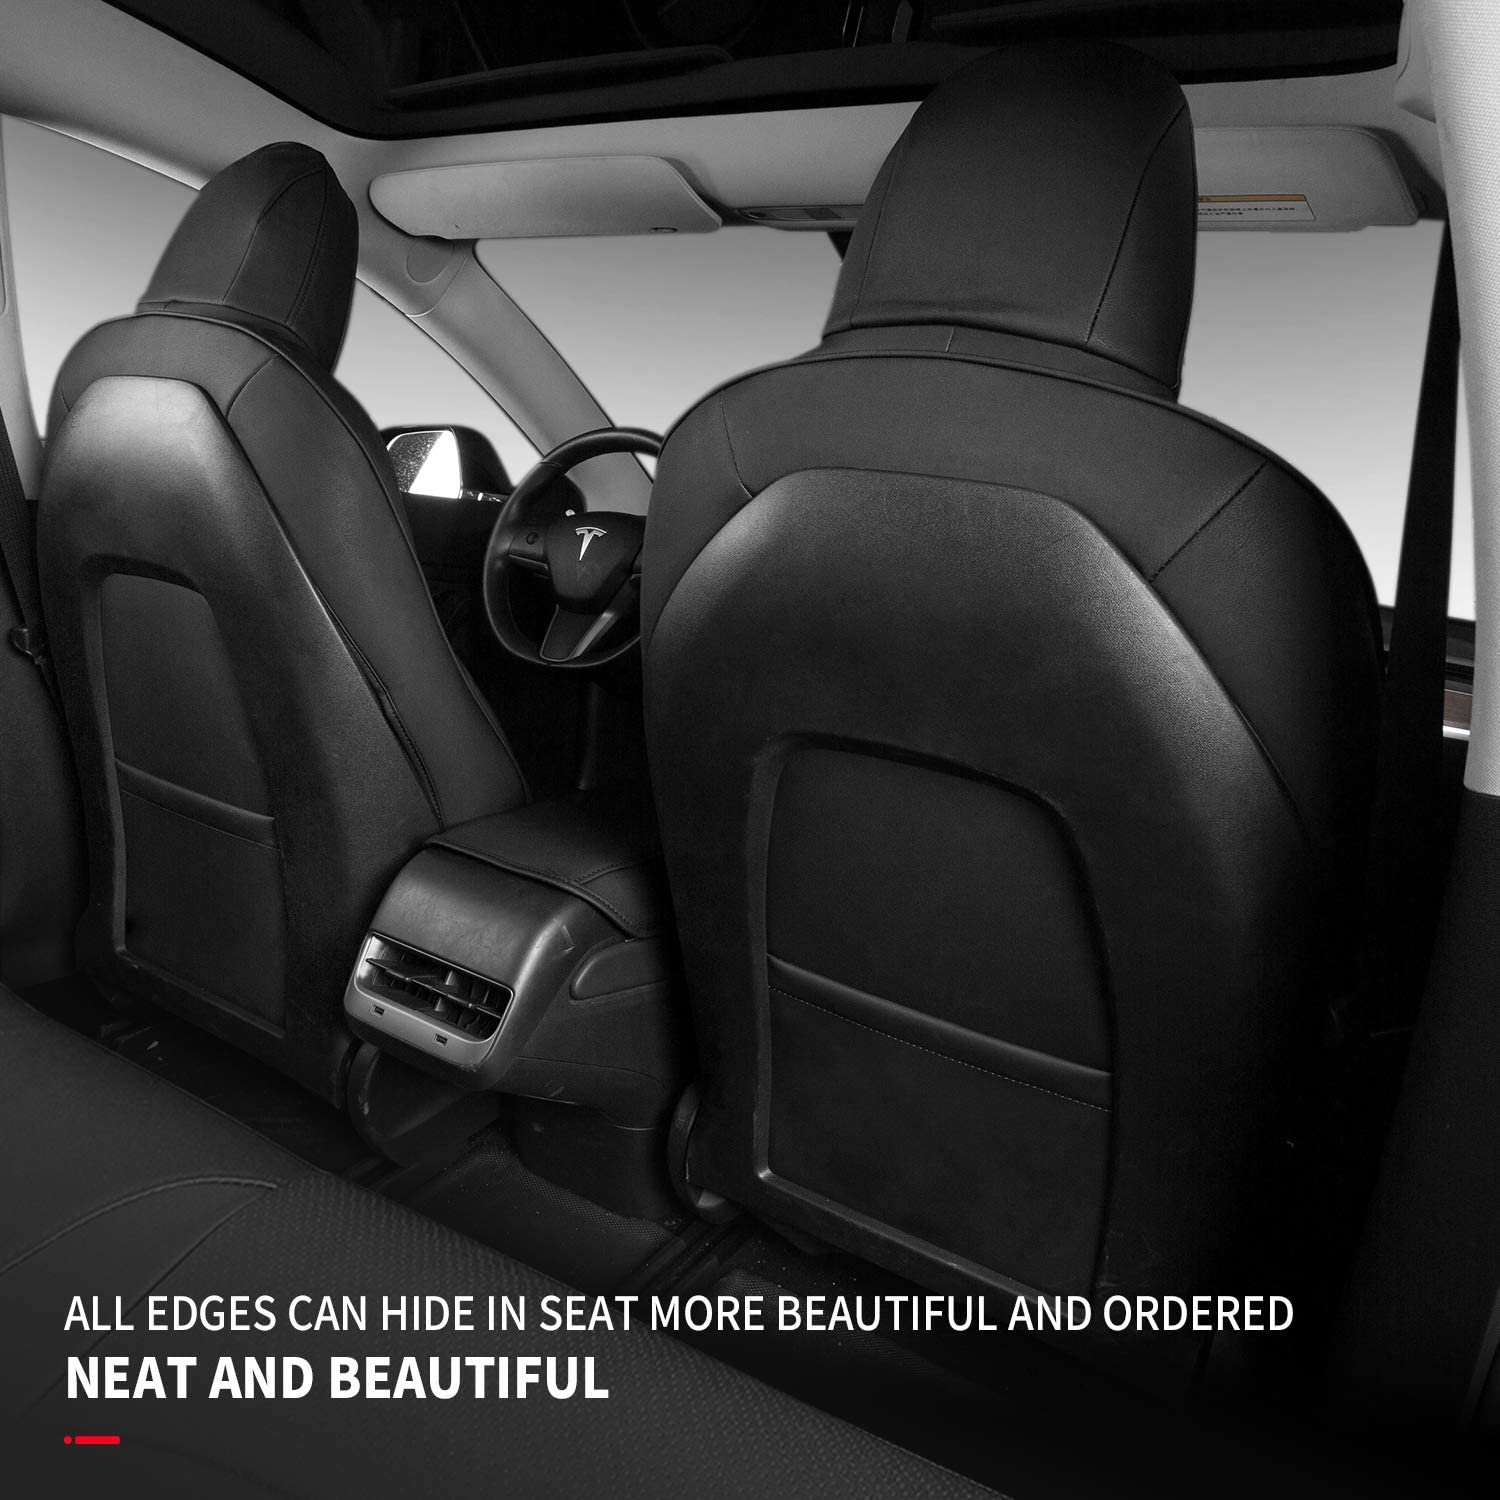 Black, 11 Pcs Xipoo for Tesla Model 3 Car Seat Cover PU Leather Cover All Season Protection for Tesla Model 3 2017 2018 2019 2020